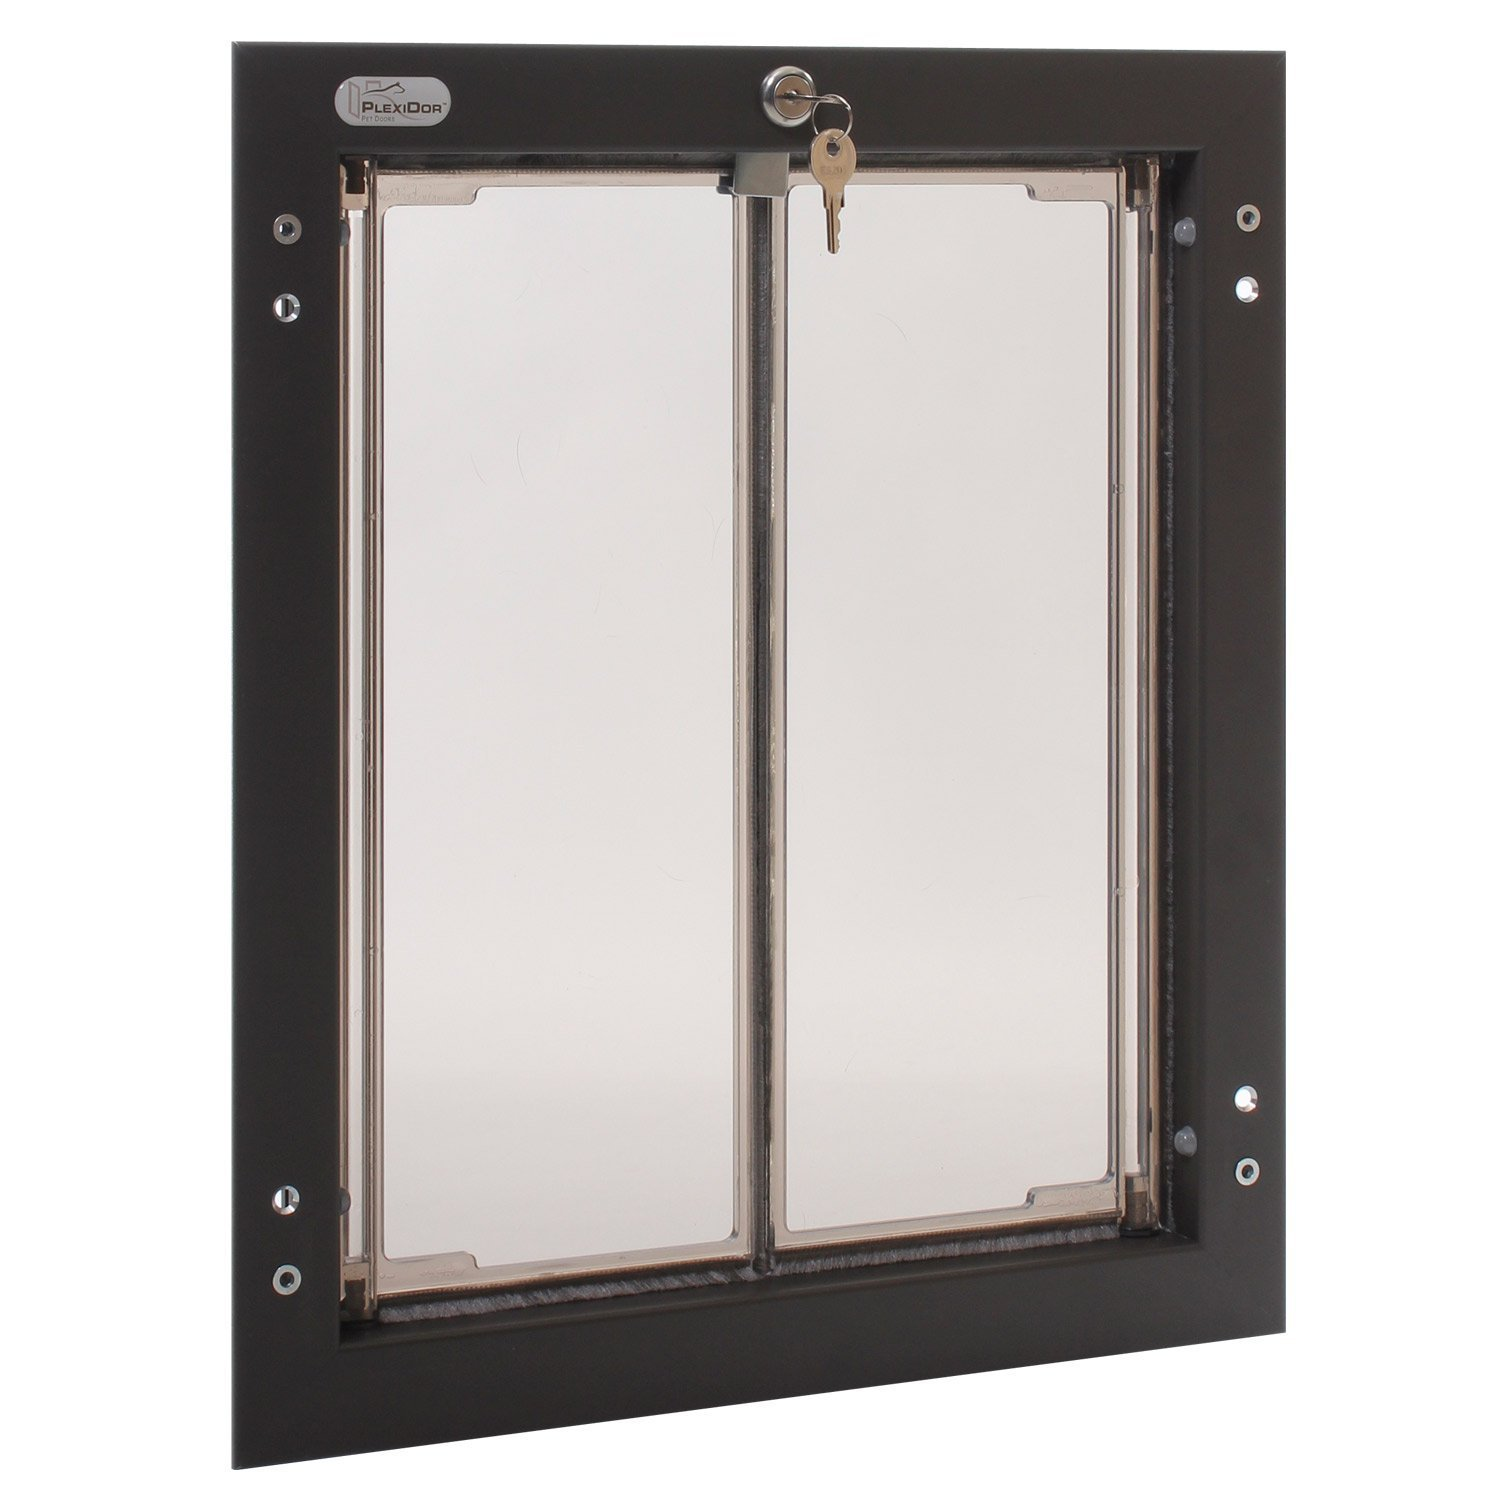 Wall Mounted PlexiDor Performance Pet Door for Large Sized Dogs in Bronze